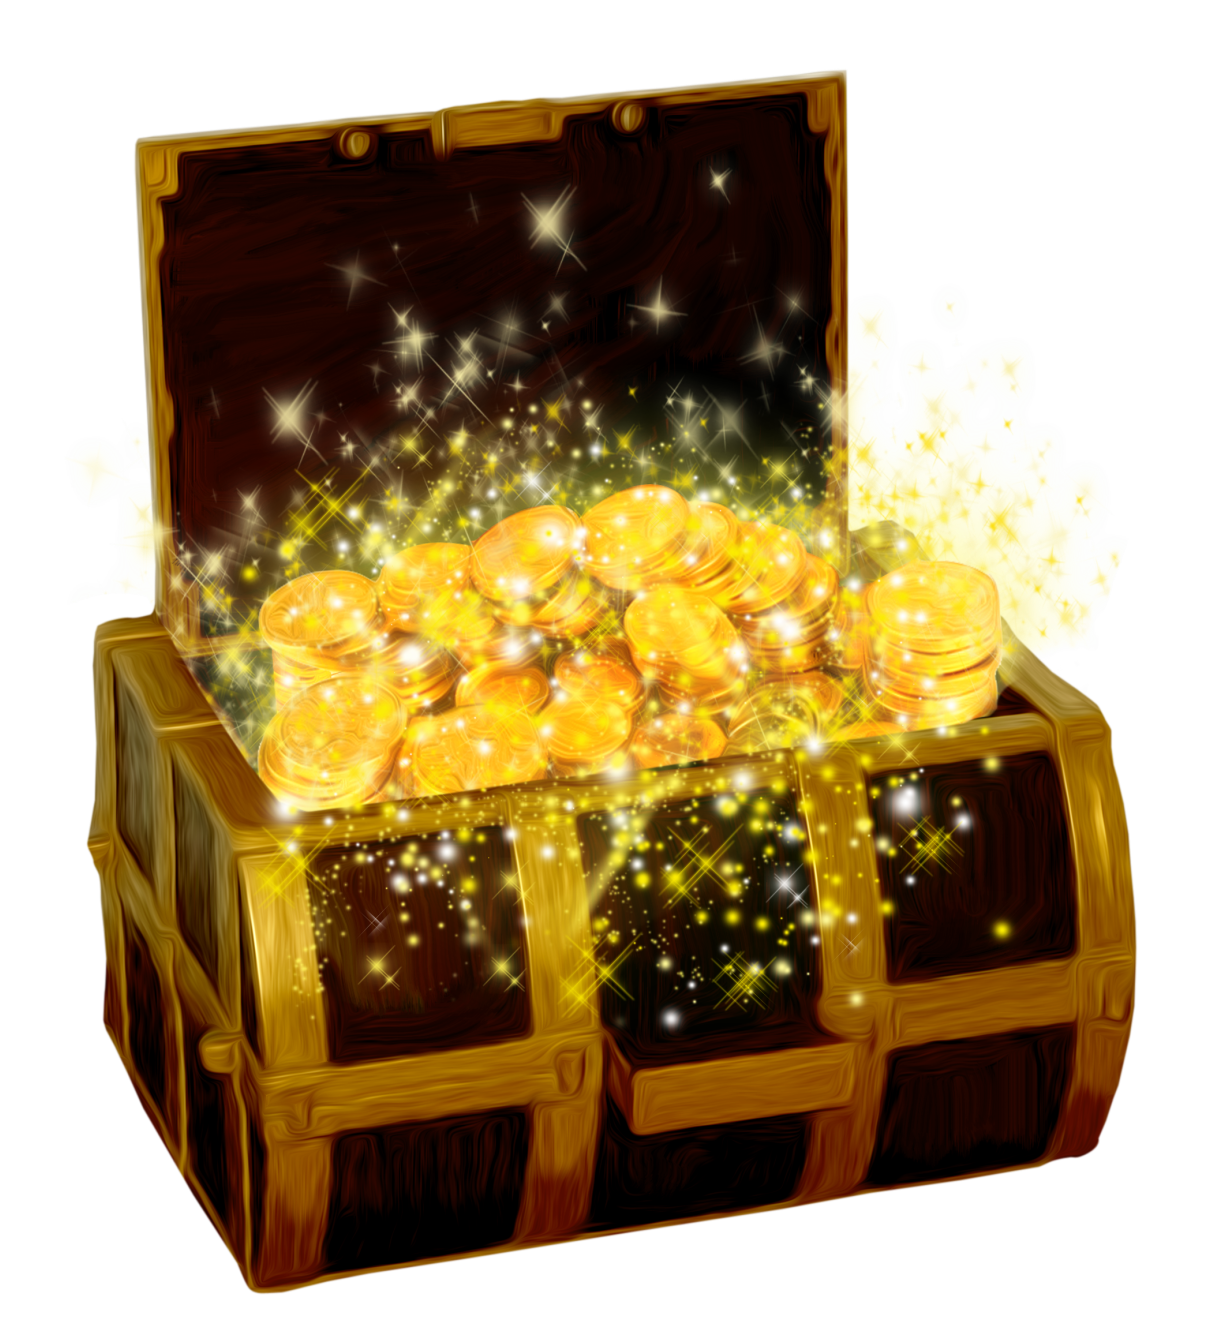 Box clipart transparent background Picture Chest PNG full with